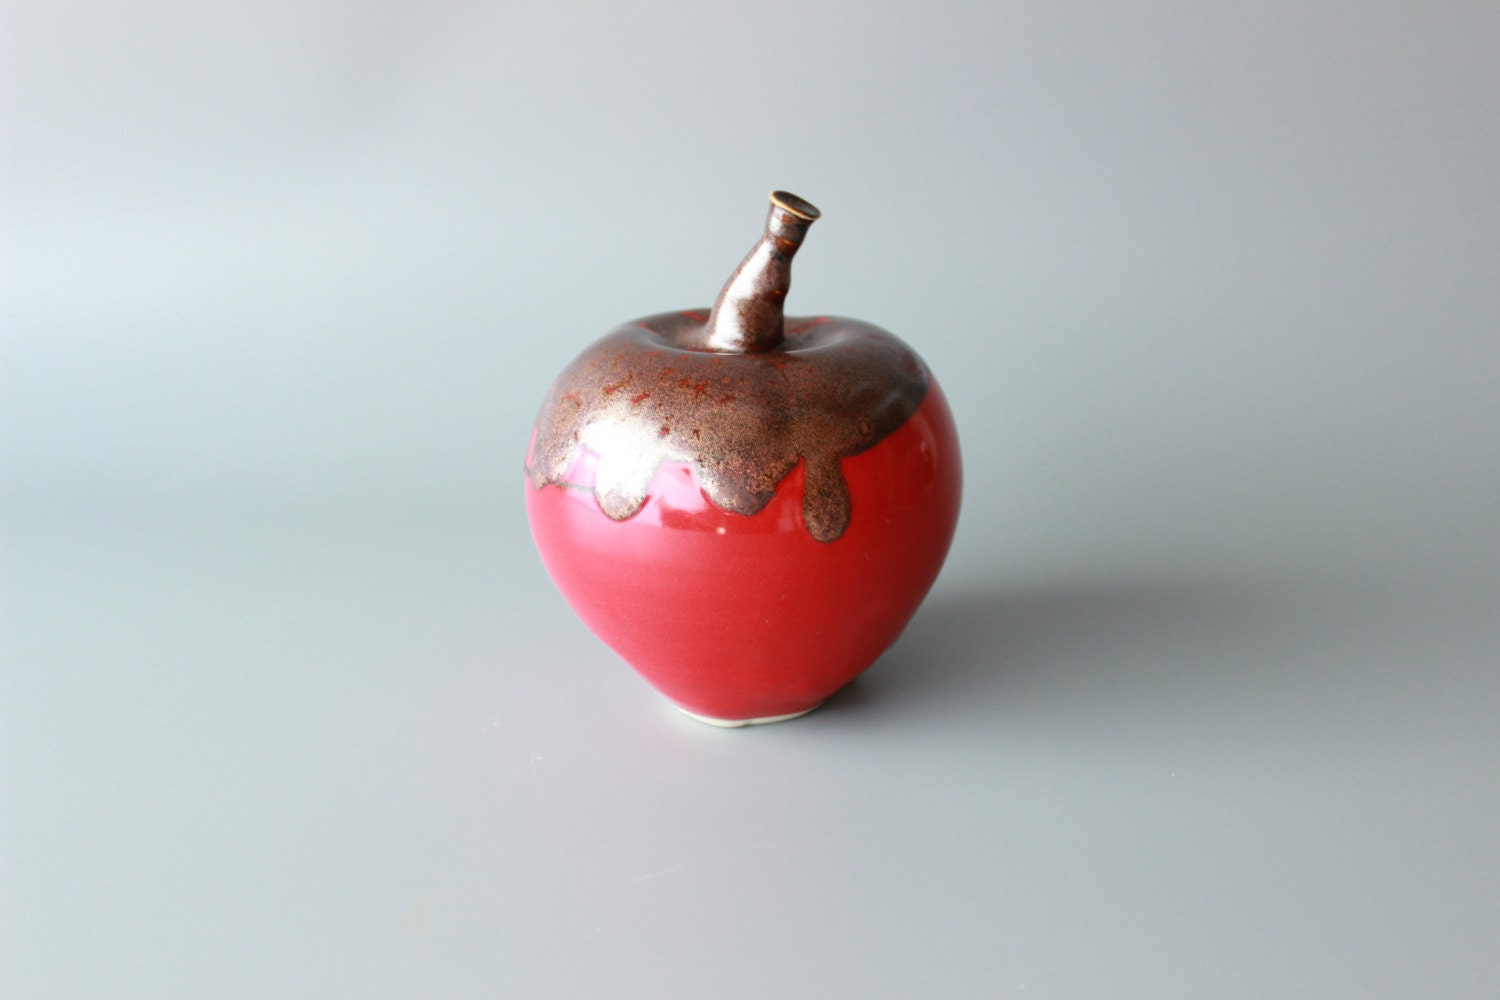 Apple handmade ceramic apple home decor red table decor for Apple home decoration